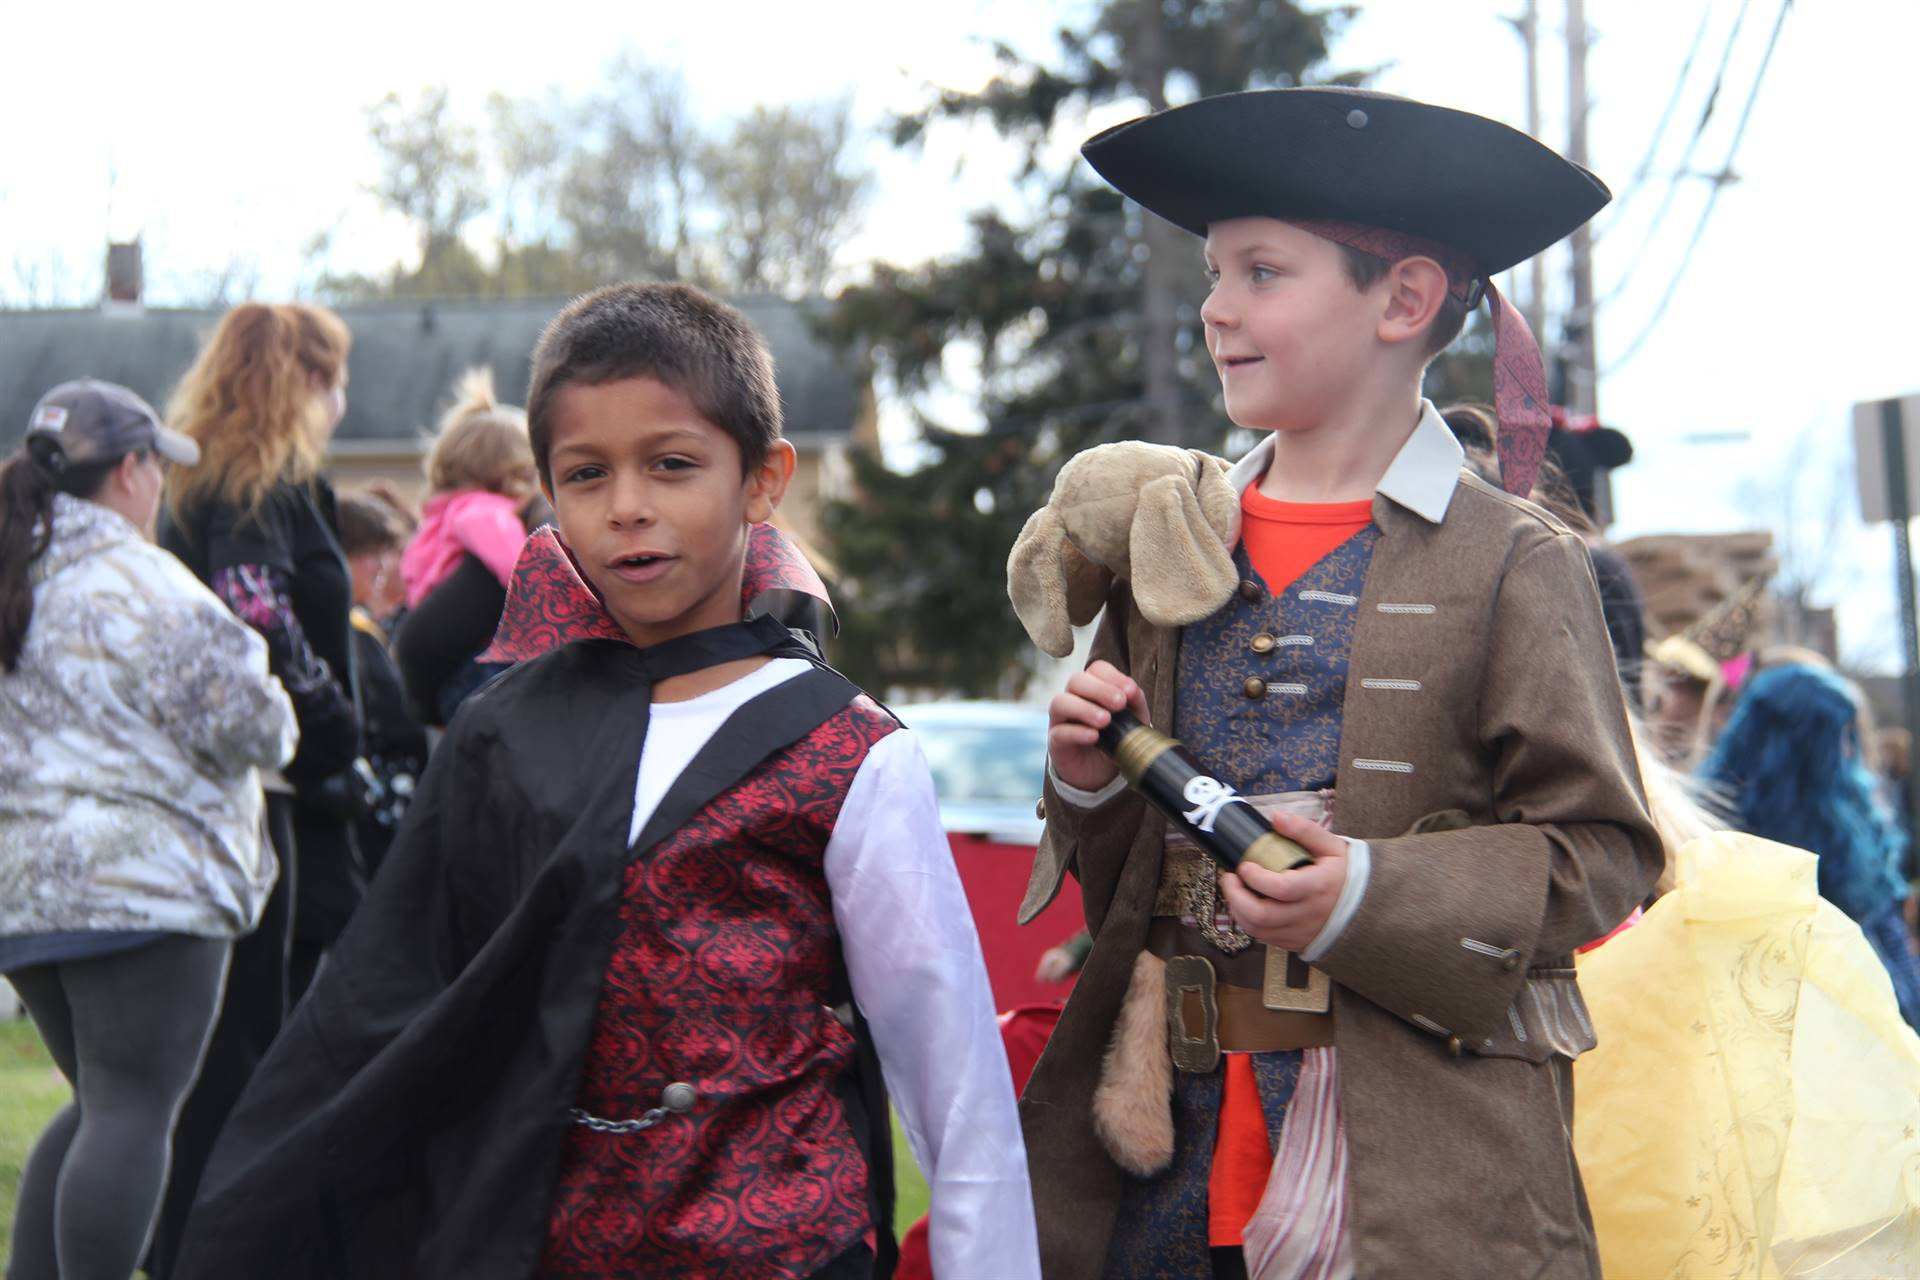 students dressed as vampire and pirate